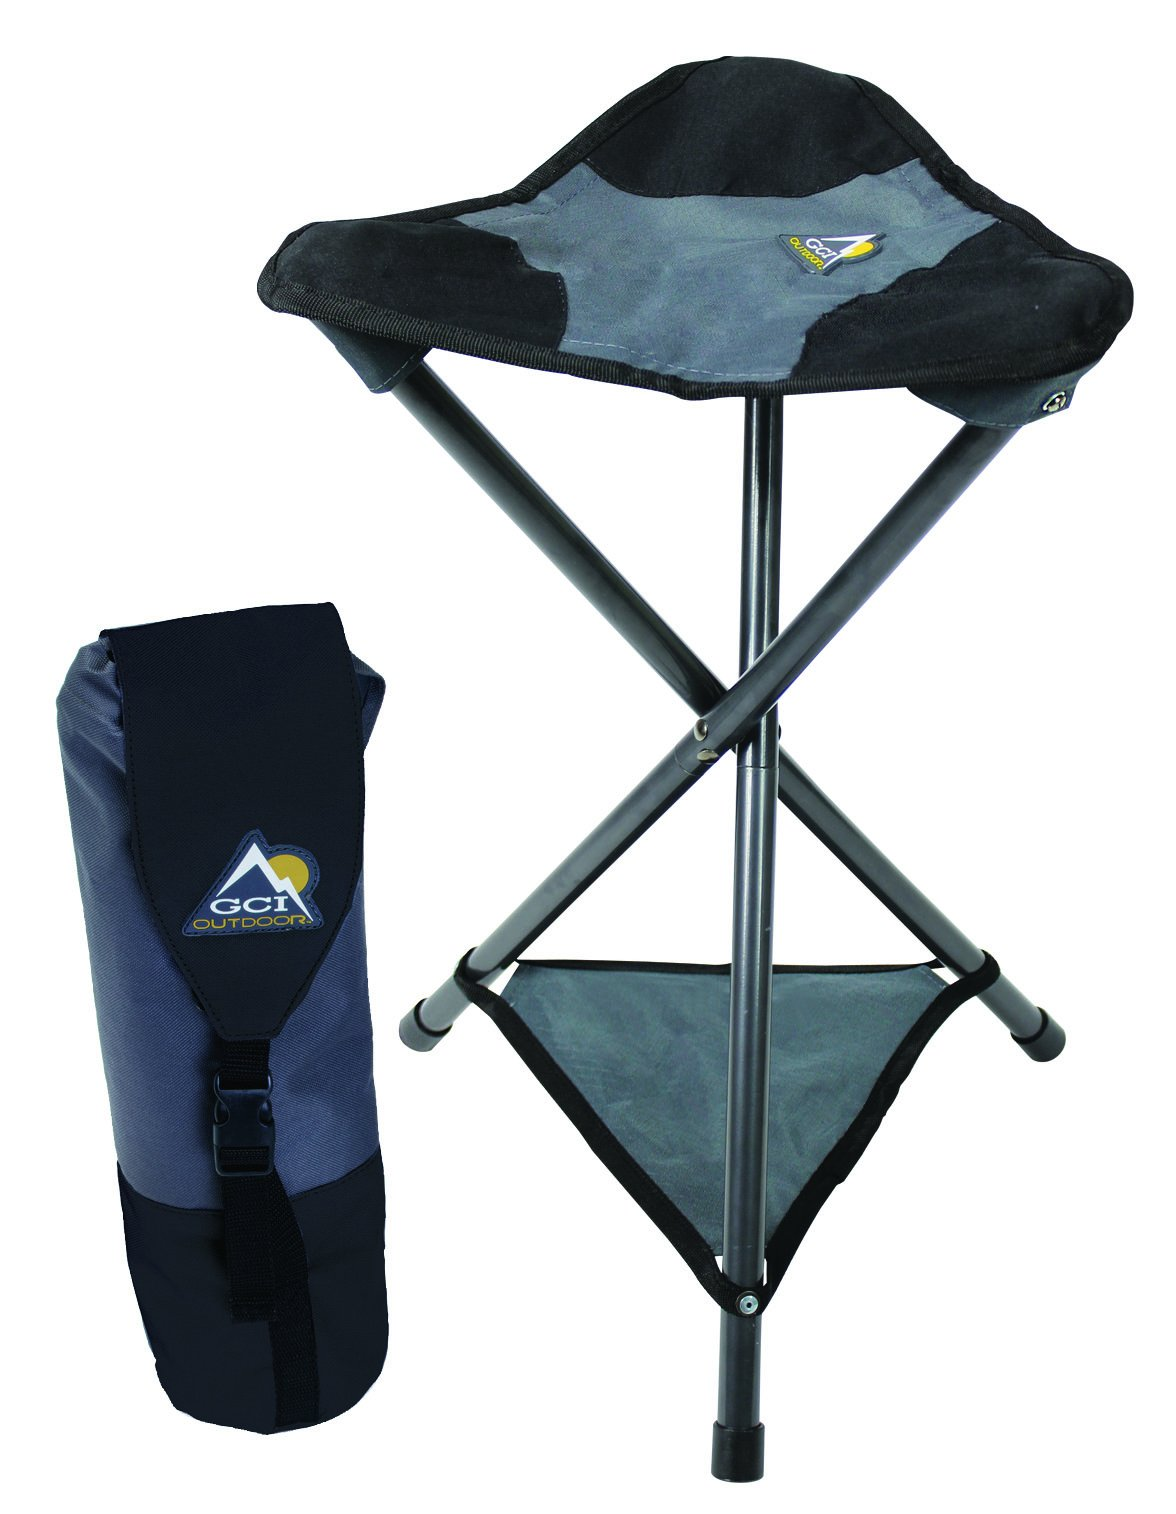 GCI Outdoor PackSeat Portable Tripod Camping Sports Stool by GCI Outdoor (Image #2)